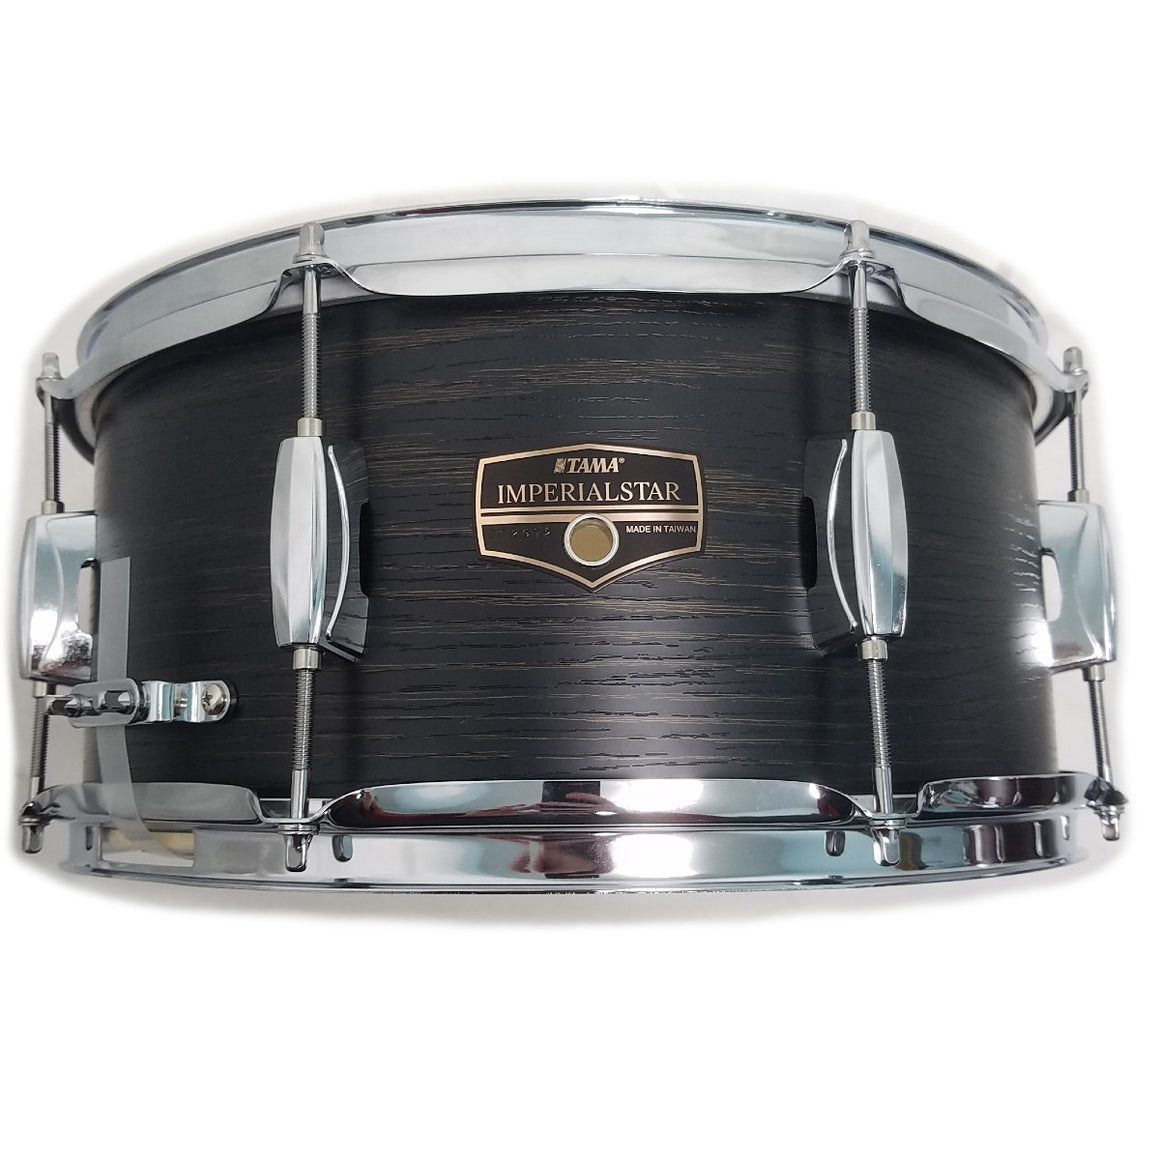 Tama Imperialstar Black Oak Snare Drum - 14 x 6.5